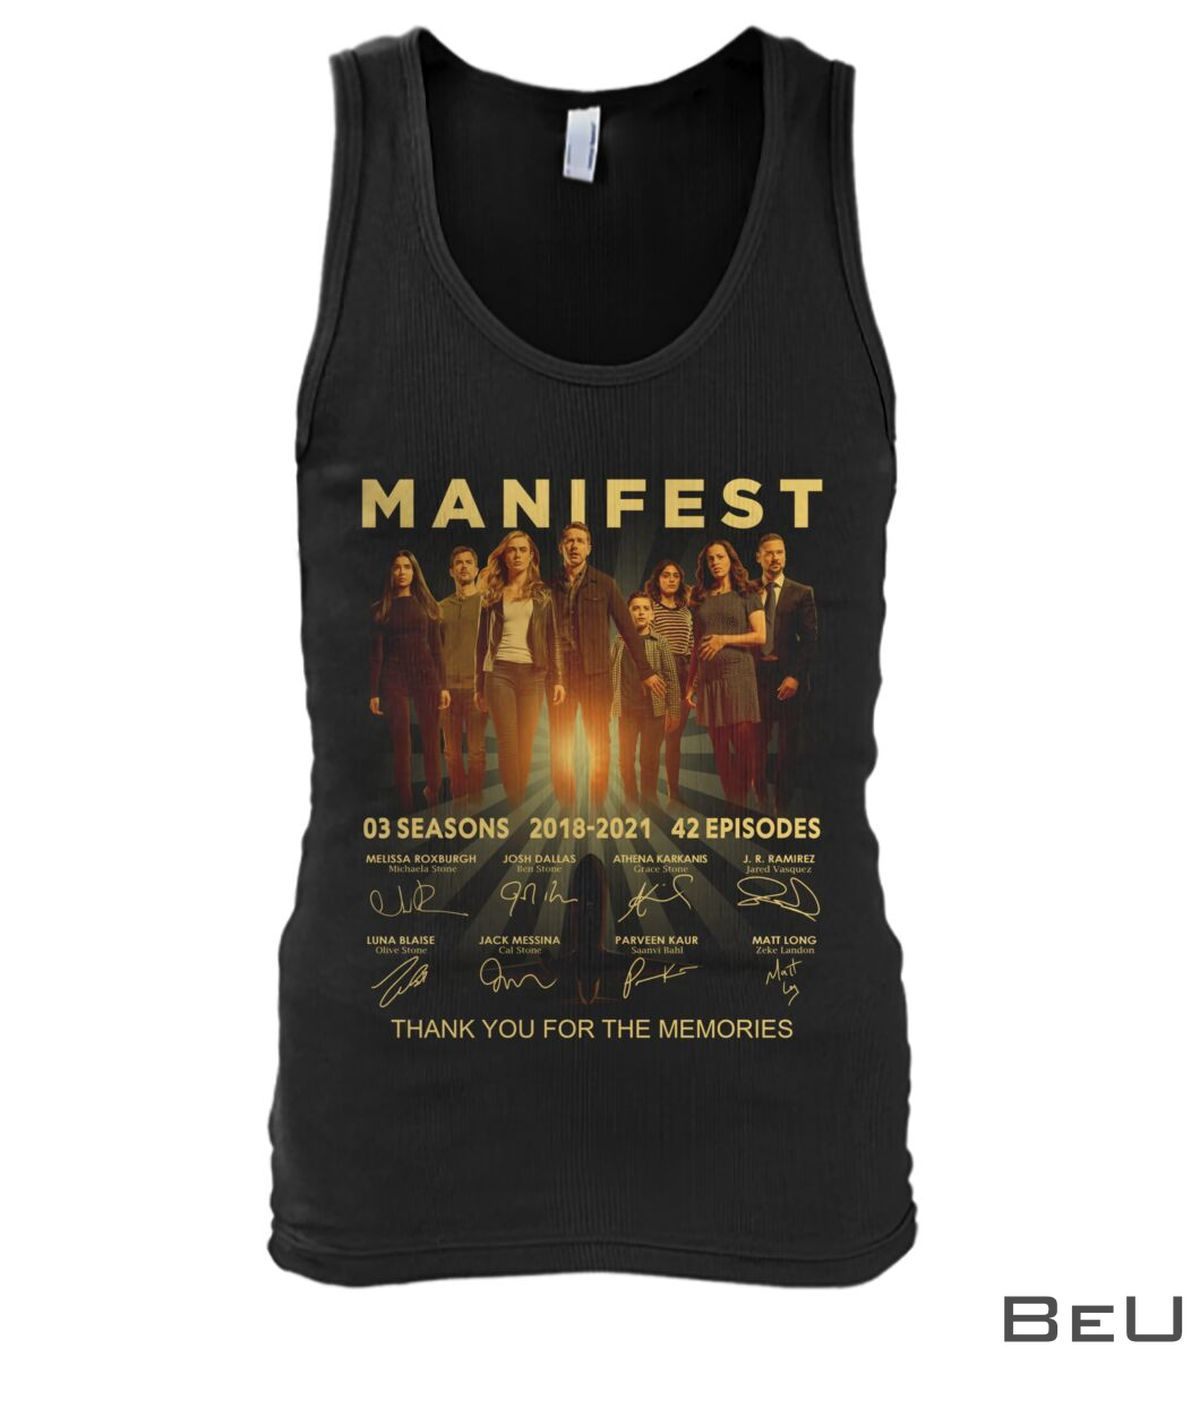 Manifest Thank You For The Memories Shirt x